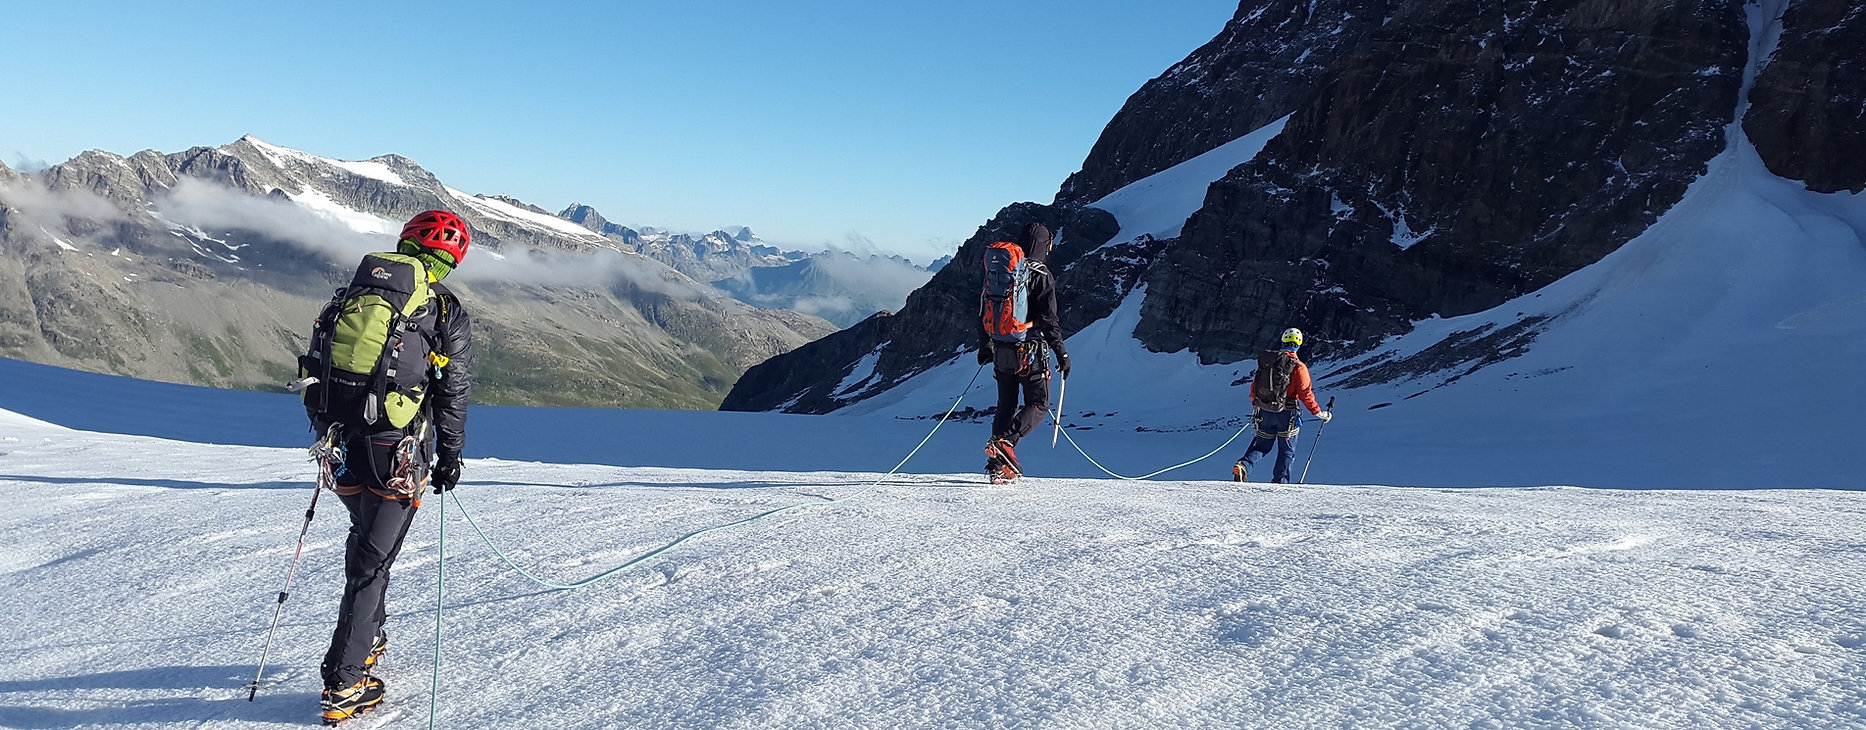 Mountaineers roped up on glacier travel during mountaineering expedition